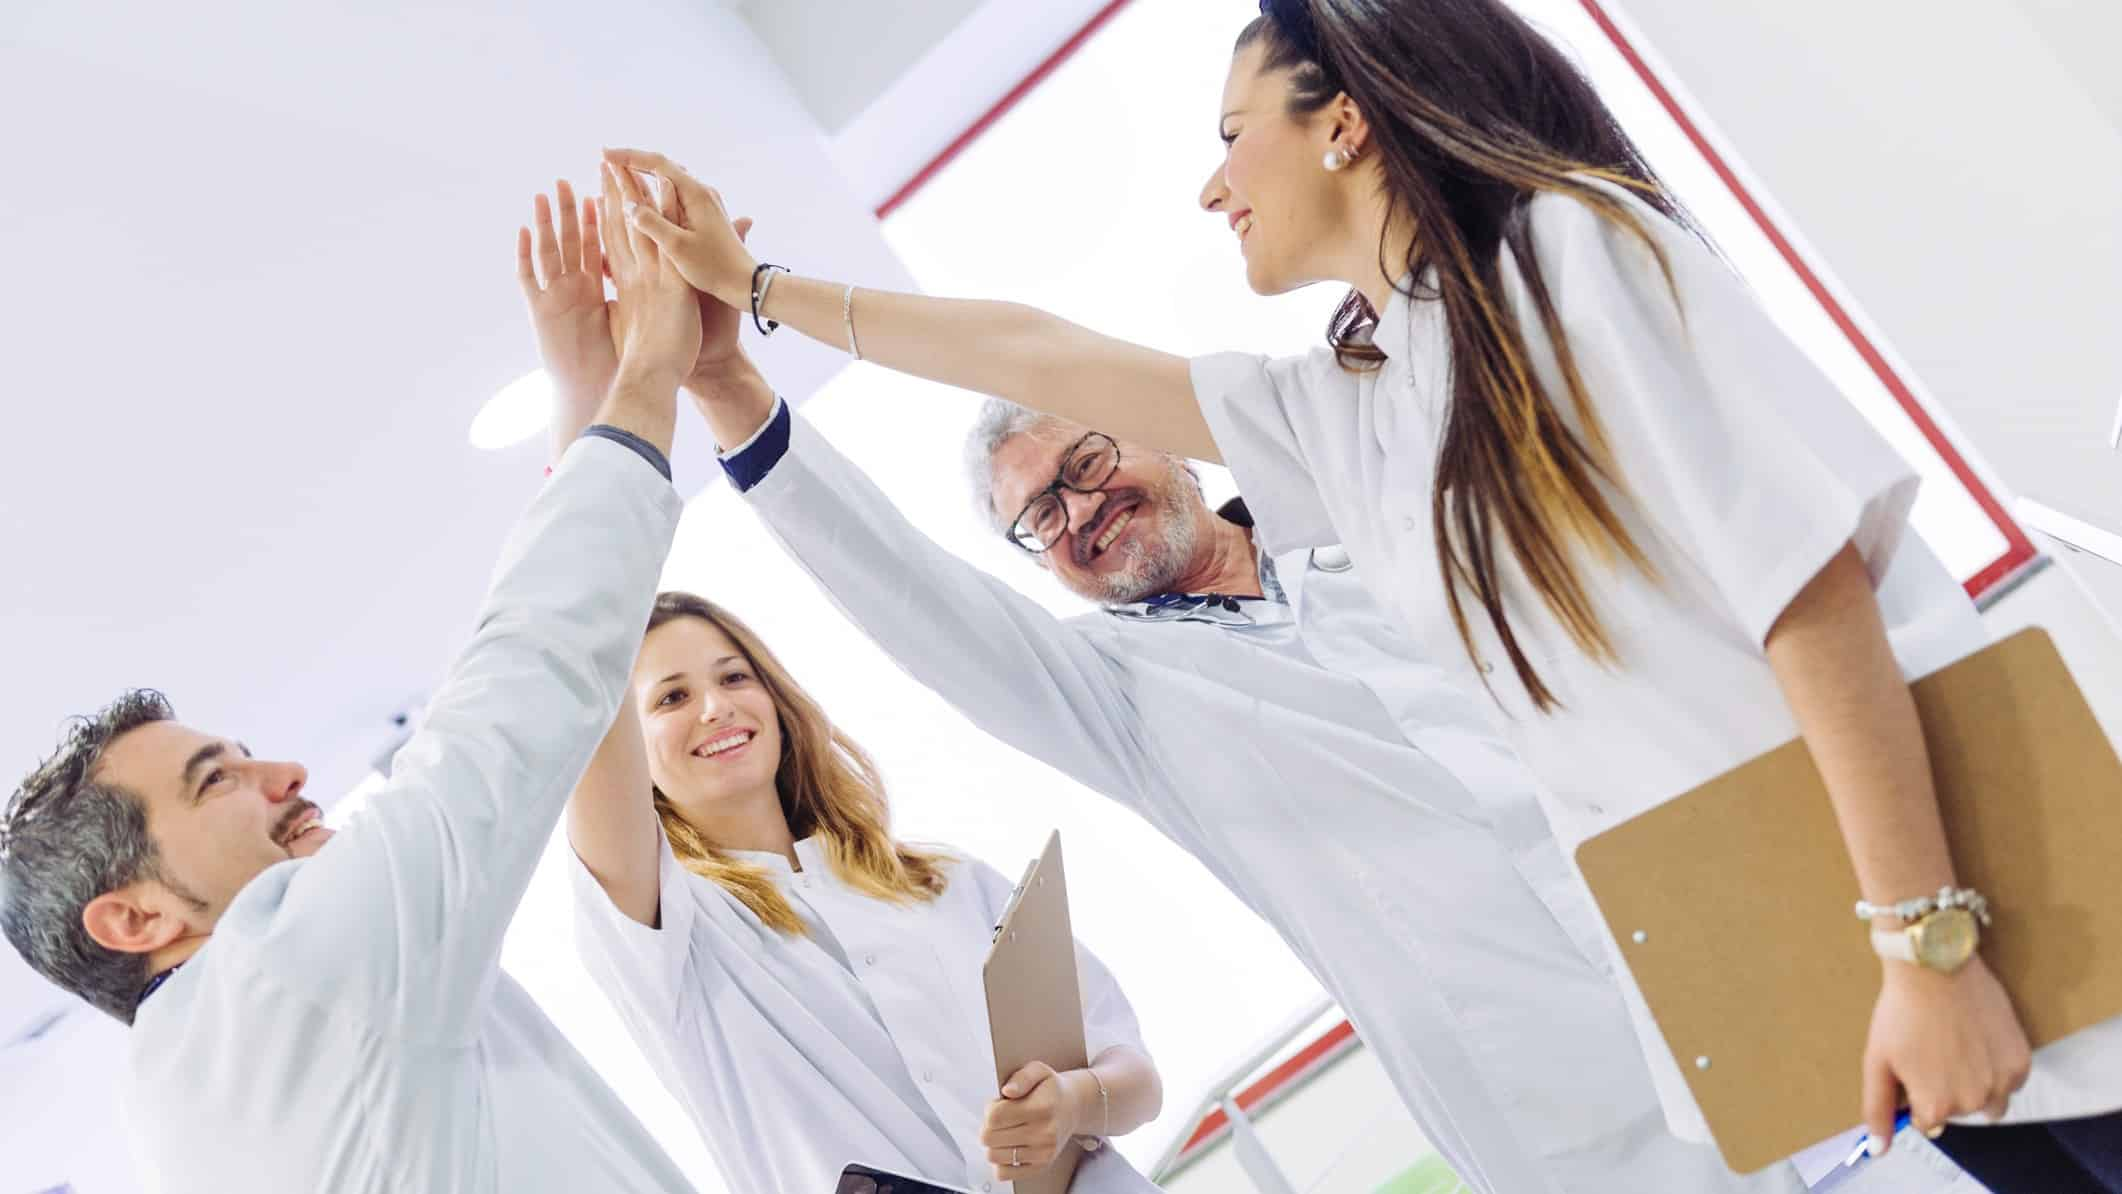 Group of medical professionals high five